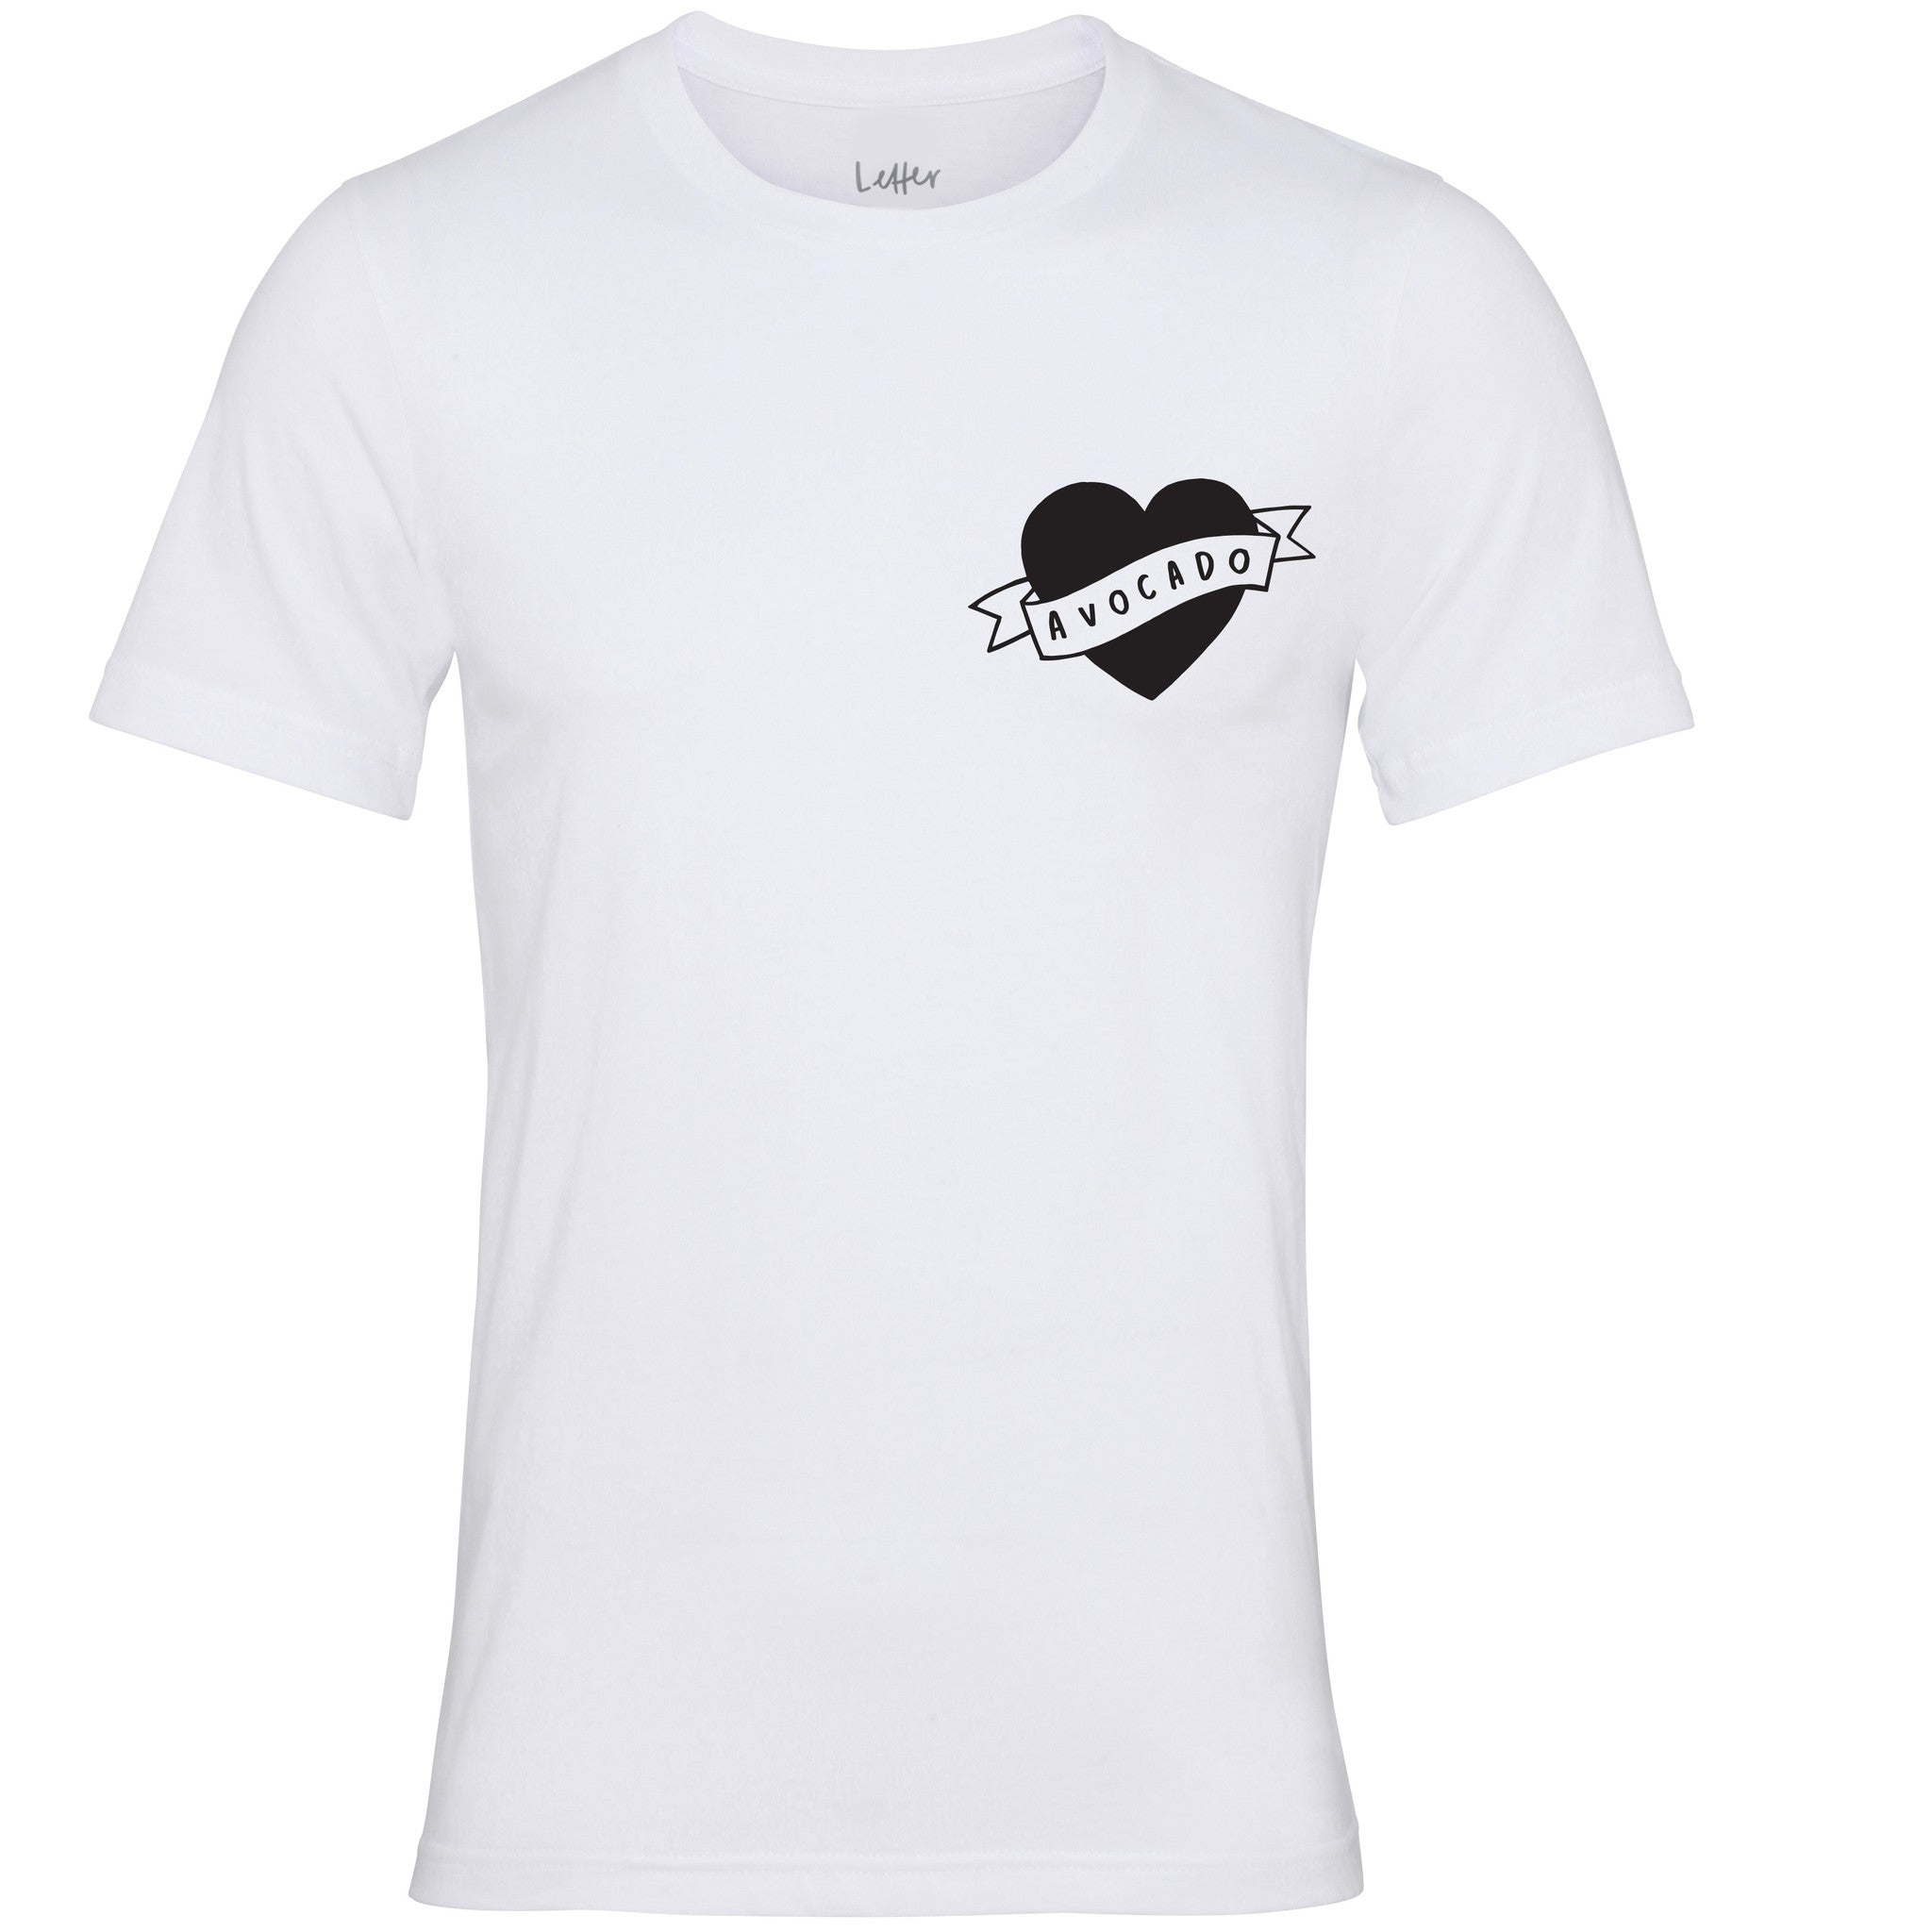 5564b4431 Heart Avocado T-Shirt - Love Avocado Tee - Typography Clothing ...